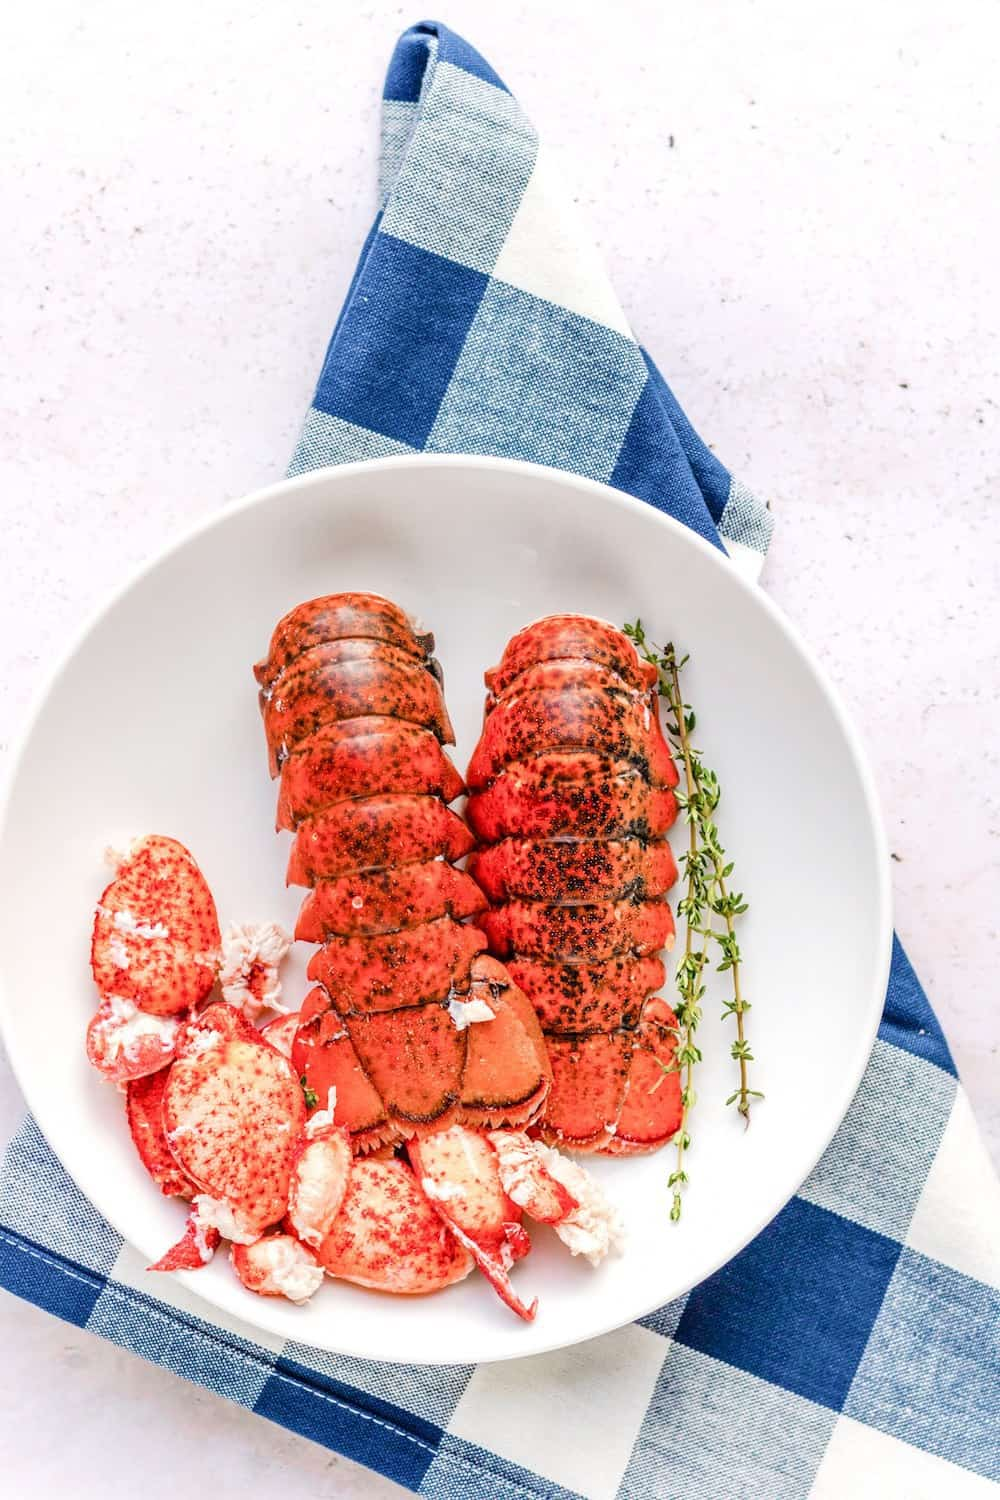 Cooked lobster tails and meat in a white bowl on a blue napkin.